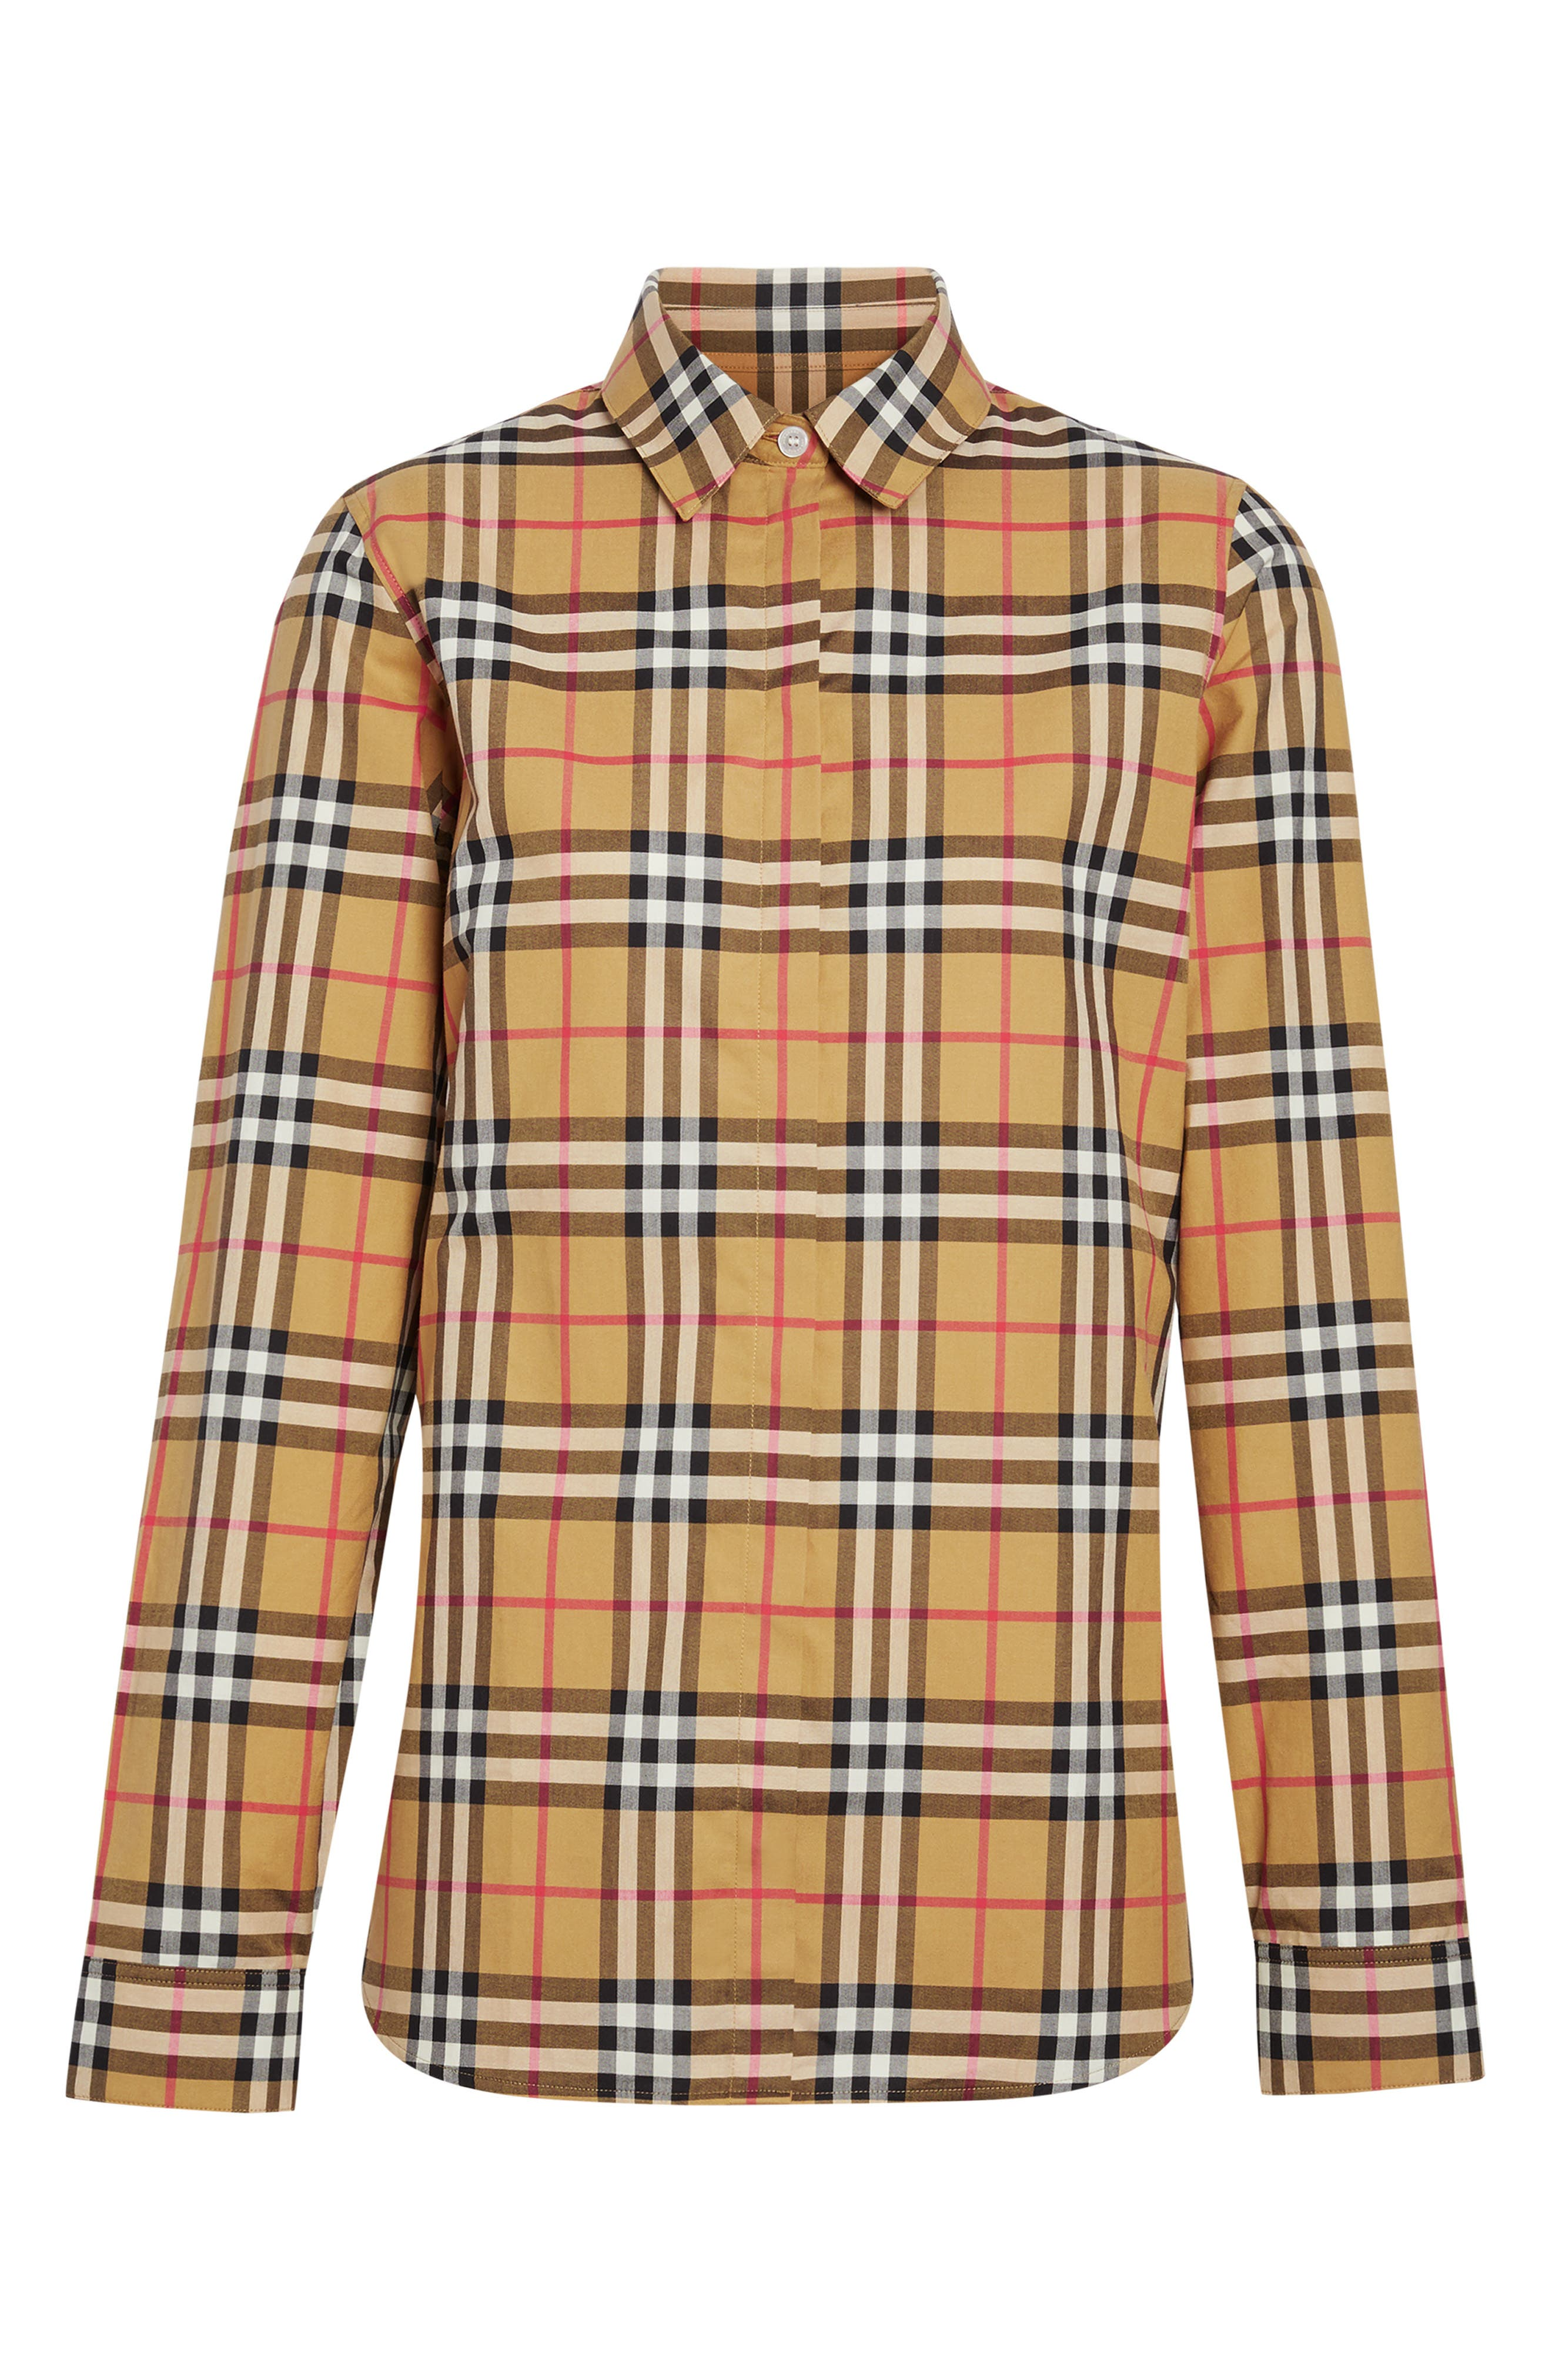 BURBERRY, Crow Vintage Check Shirt, Alternate thumbnail 3, color, ANTIQUE YELLOW CHECK